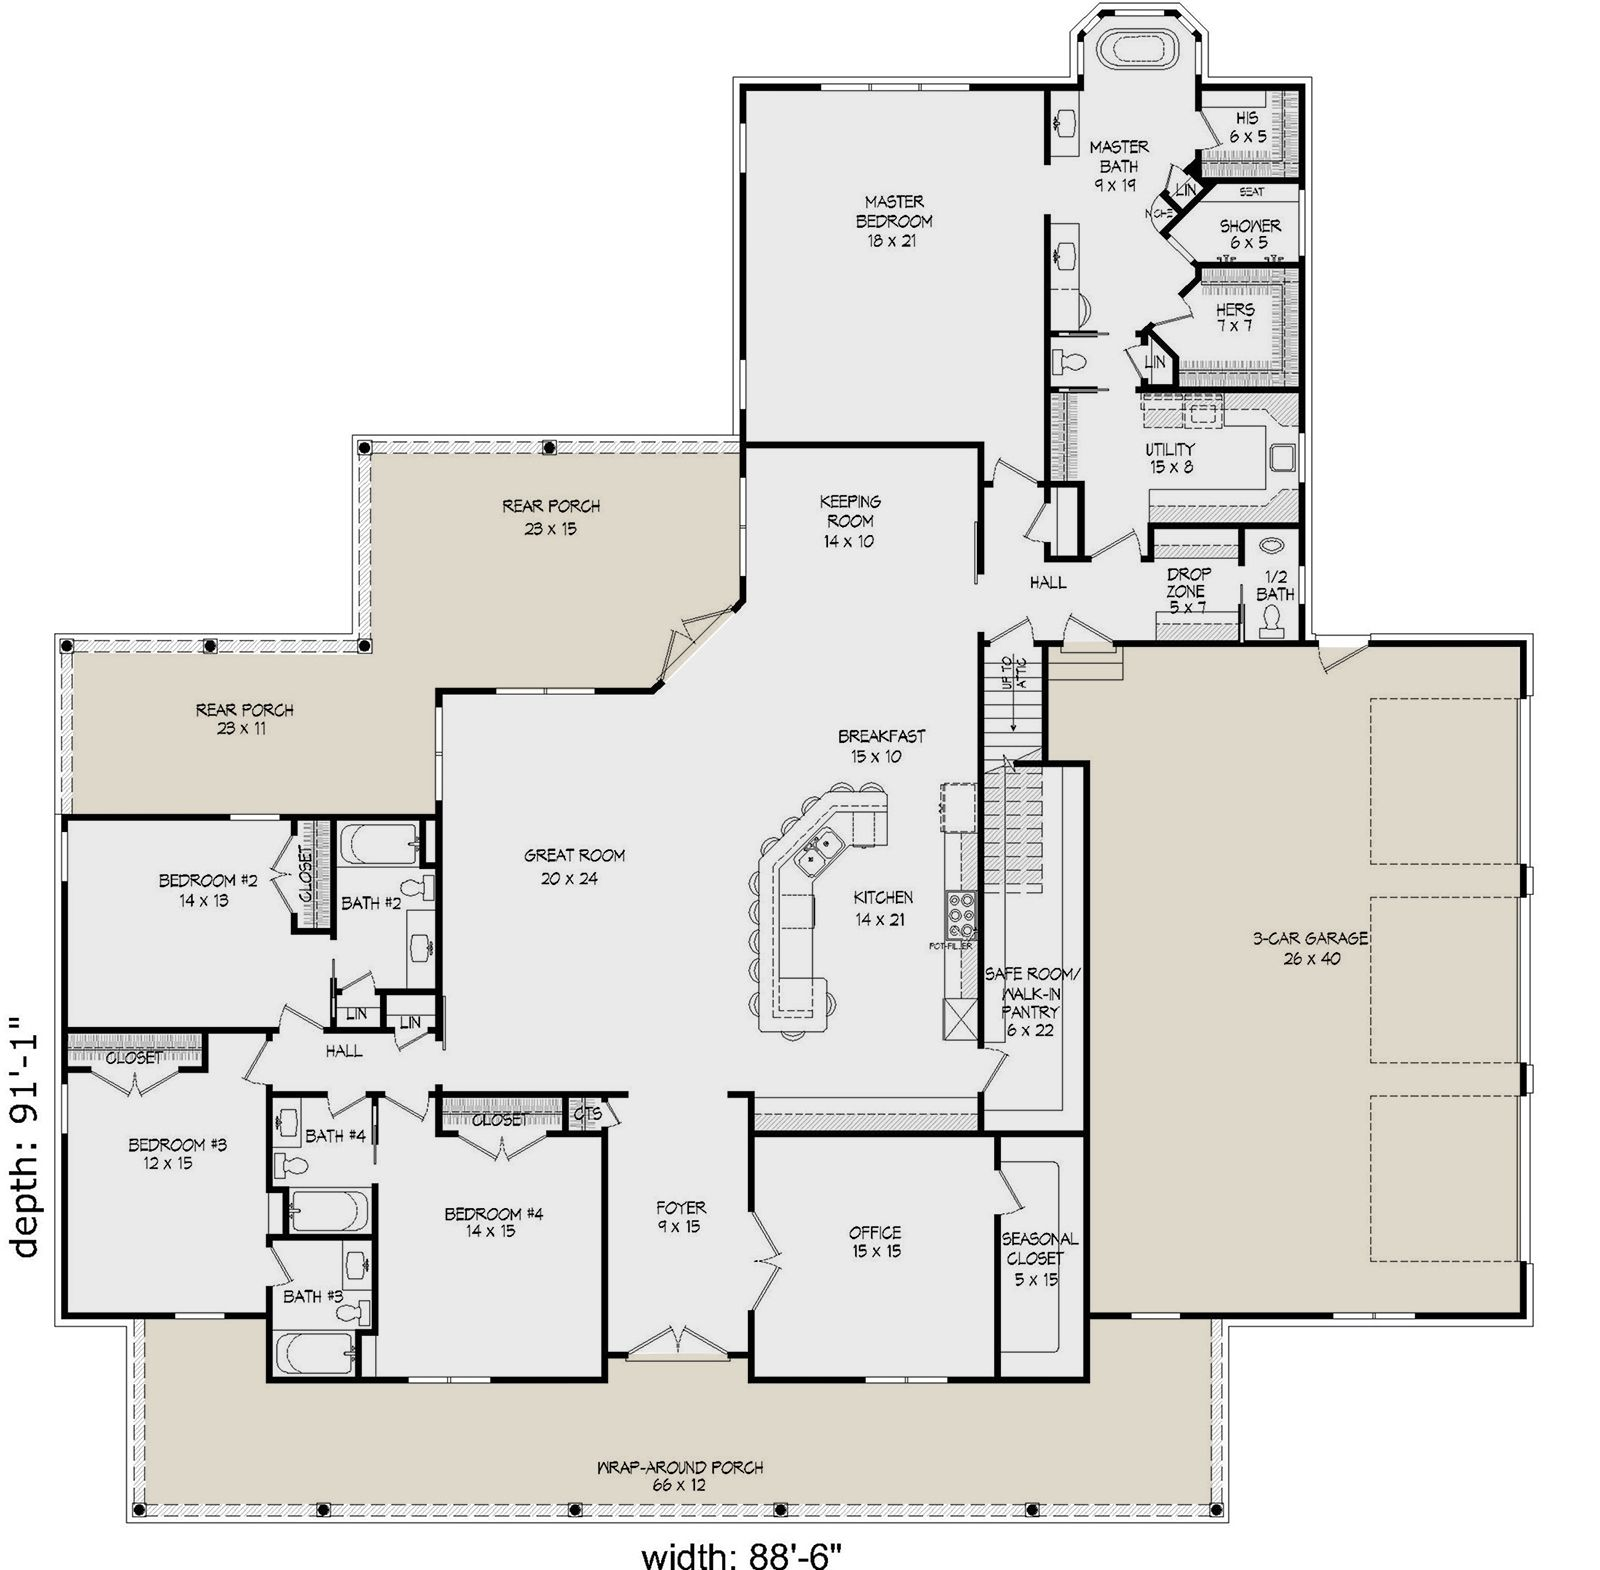 House Plan 940 00137 Country Plan 3 617 Square Feet 4 Bedrooms 4 5 Bathrooms Country Style House Plans Ranch Style House Plans House Plans